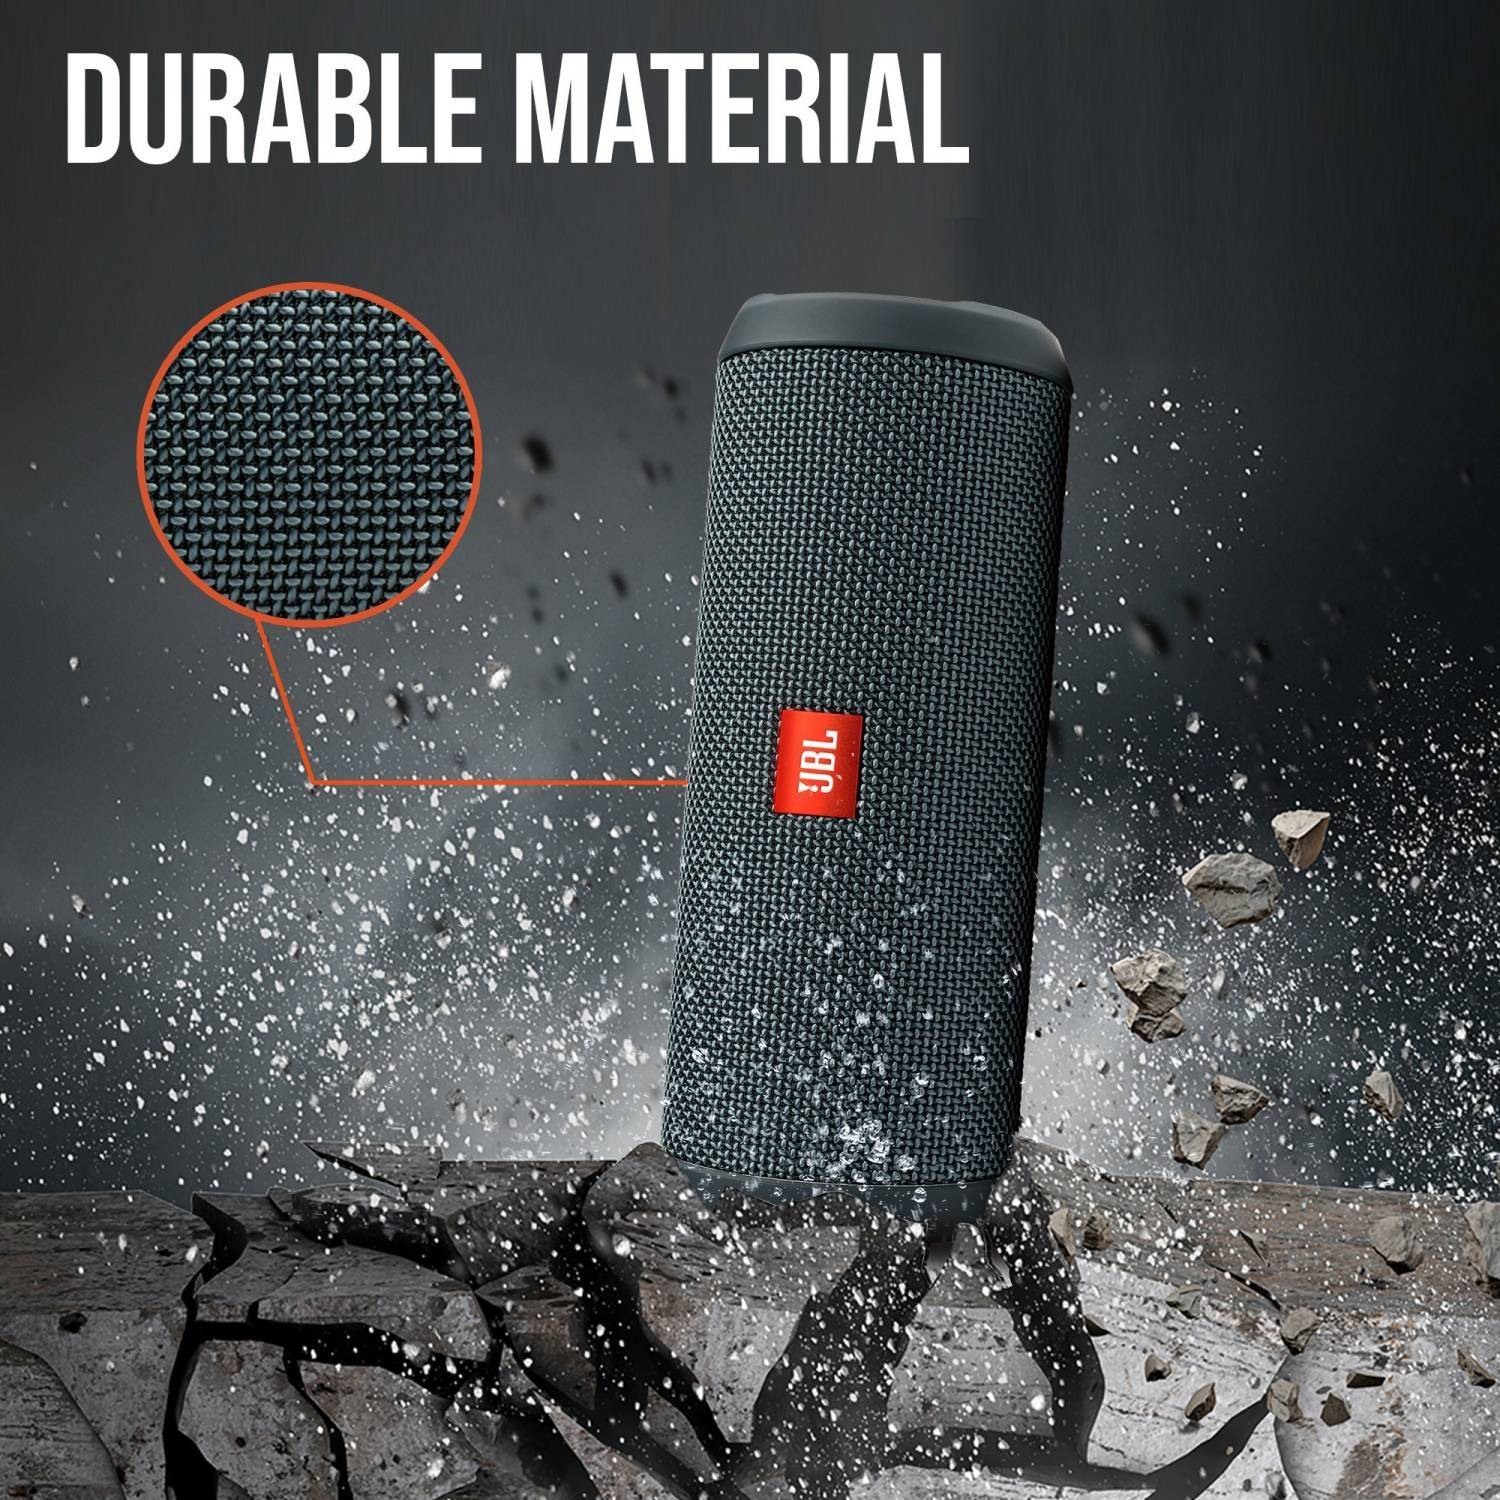 Durable Material